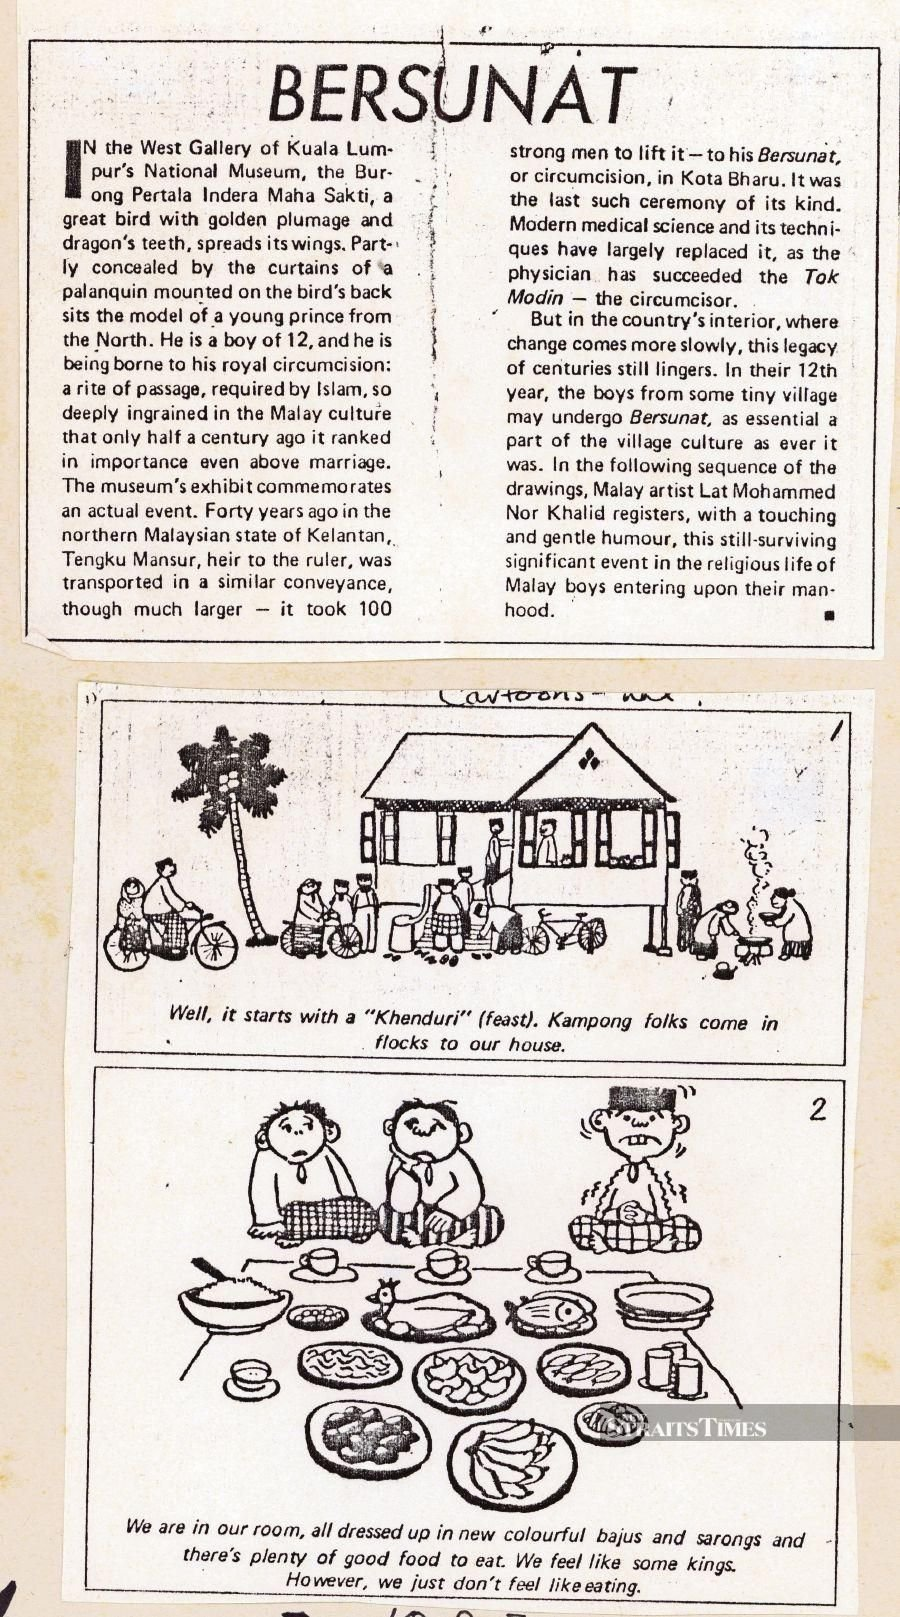 Lat's cartoon titled 'Bersunat' was published by 'Asia Magazine' in 1974. The text on the first cartoon reads: 'Well, it starts with a 'Khenduri' (feast). Kampong folks come in flocks to our house.' The text on the second cartoon reads: 'We are in our room, all dressed up in new colourful bajus and sarongs and there's plenty of good food to eat. We feel like some kings. However, we just don't feel like eating.'